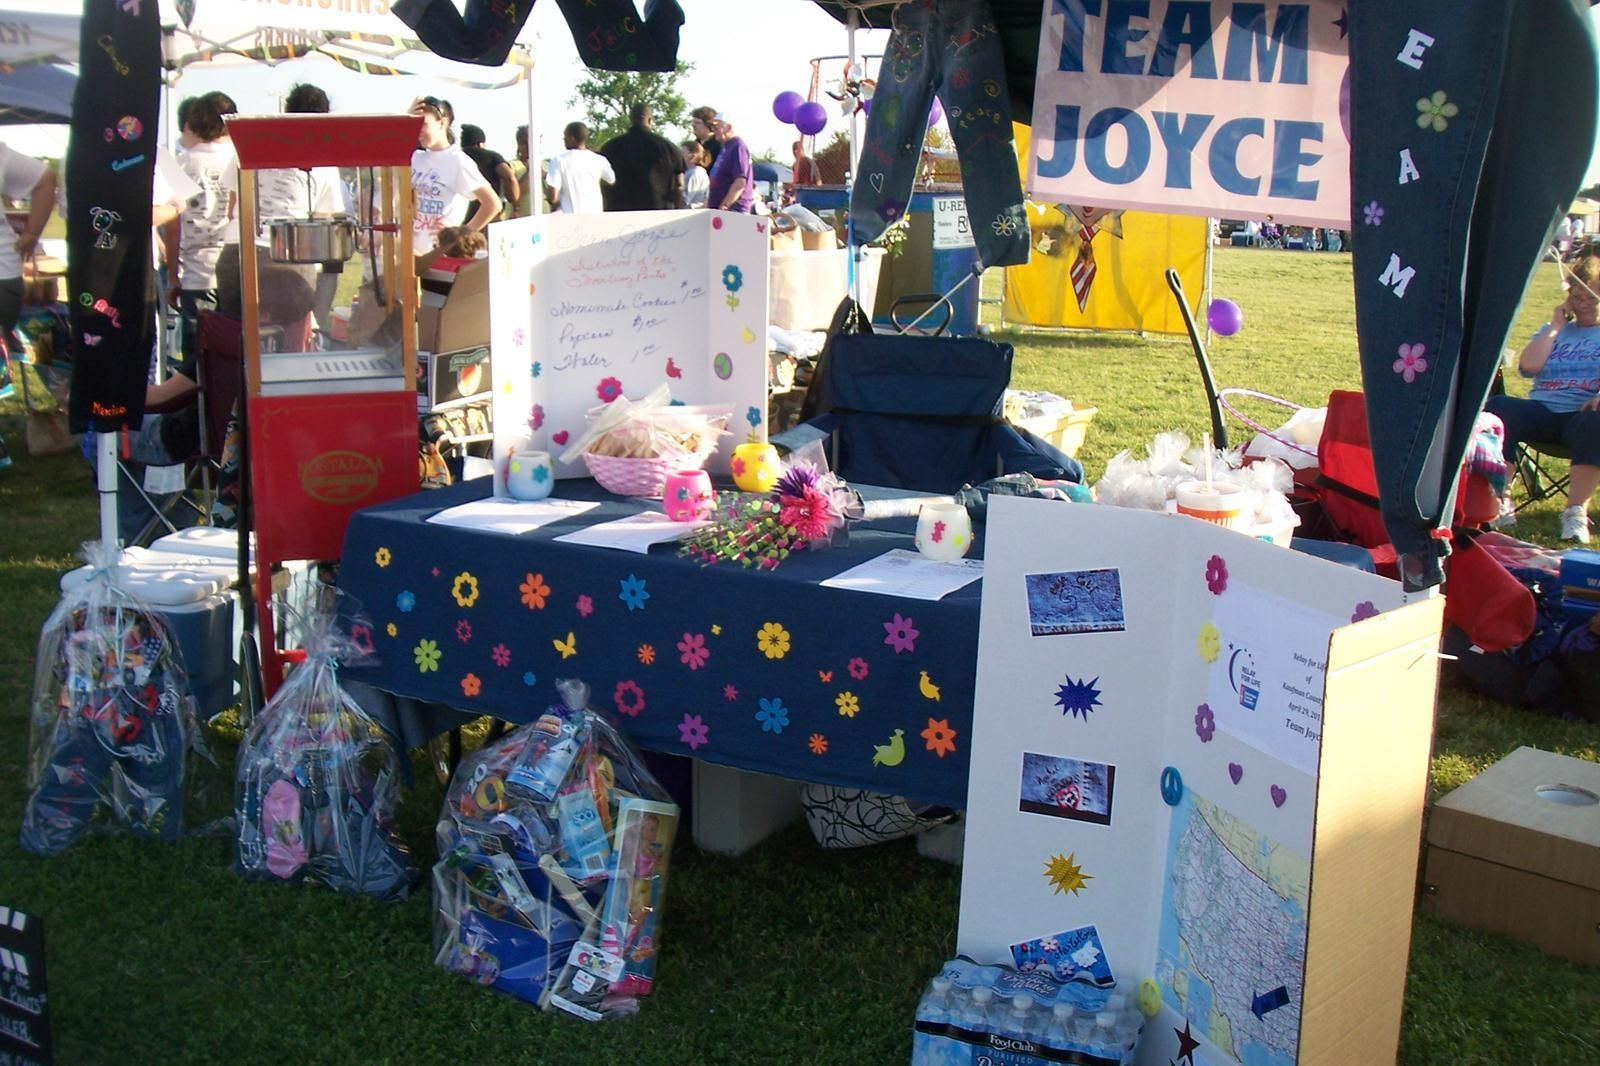 Relay for Life Campsite Ideas | Relay For Life Themes #campsiteideas Relay for Life Campsite Ideas | Relay For Life Themes #campsiteideas